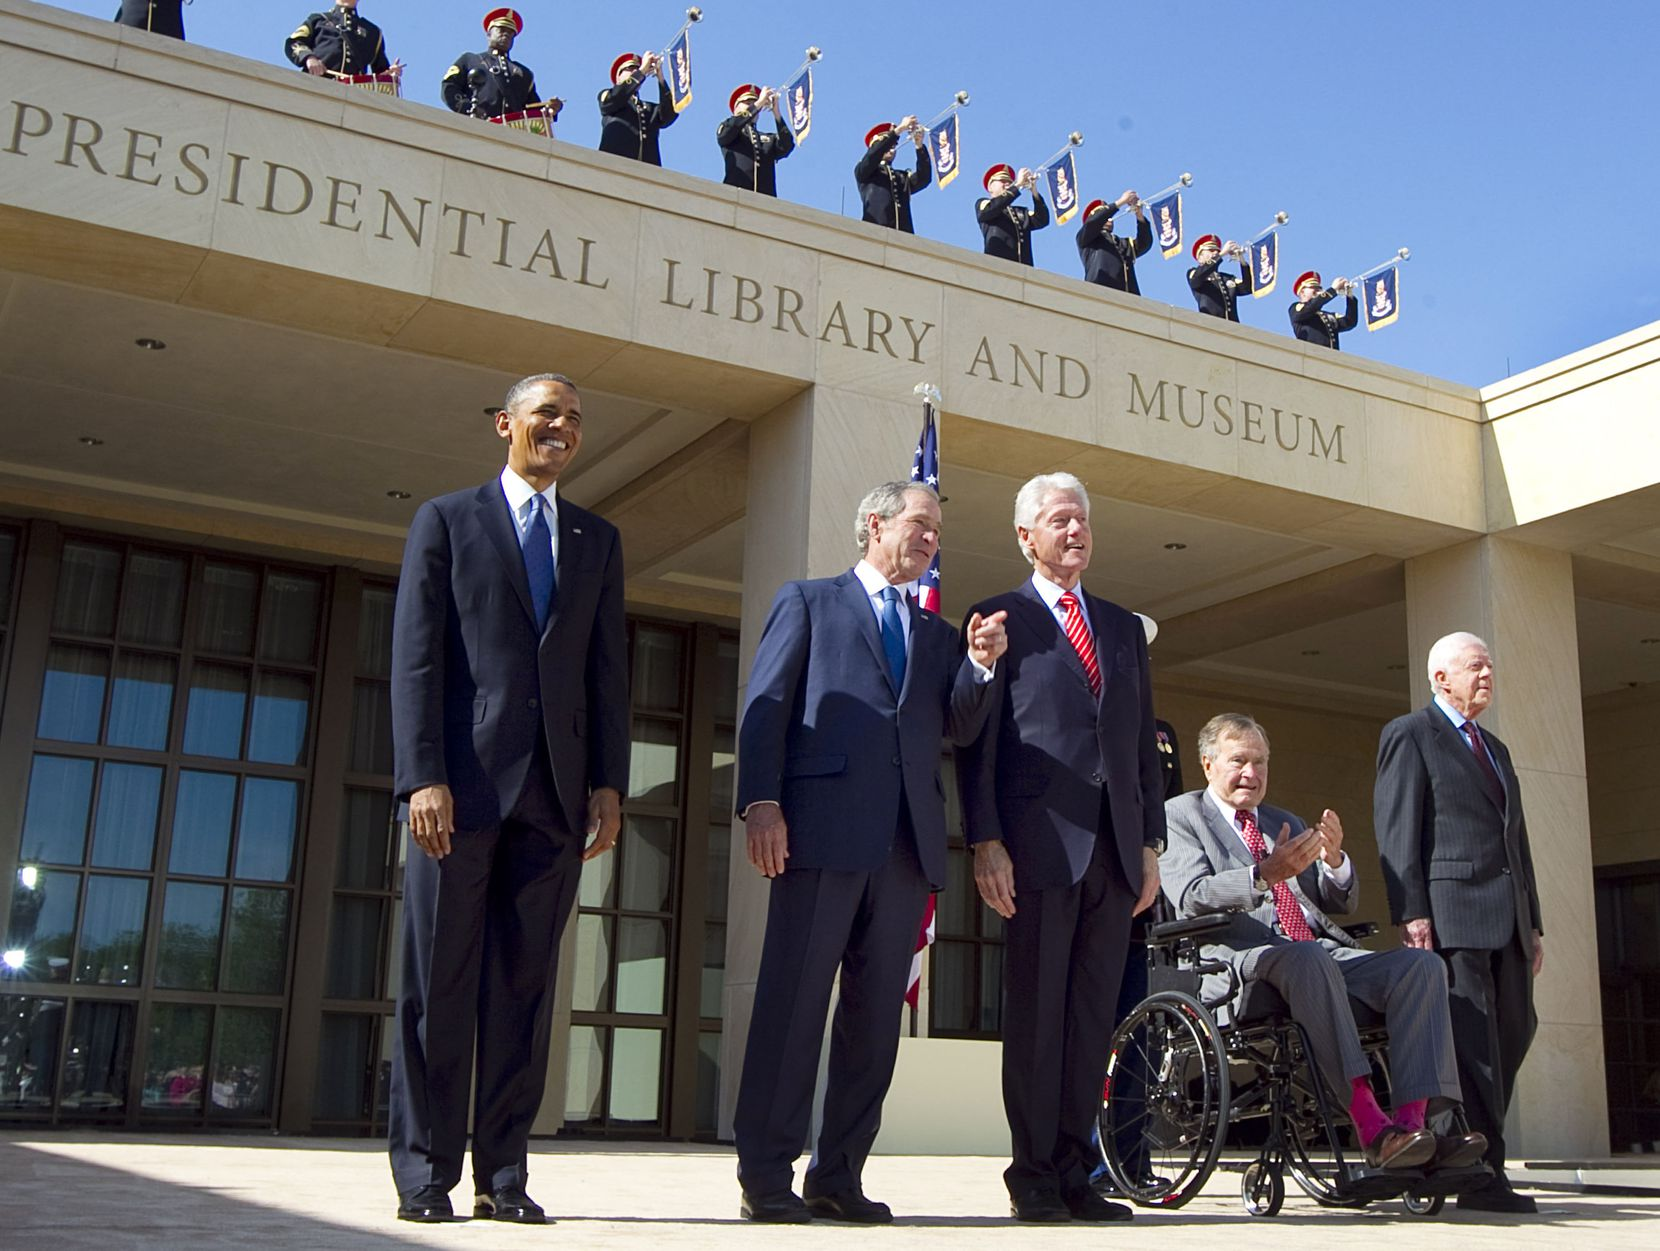 2013: George H.W. Bush was among those in a rare photo of five living U.S. presidents at the George W. Bush Presidential Center dedication in University Park. From left are Barack Obama, George W. Bush, Bill Clinton, George H.W. Bush and Jimmy Carter.